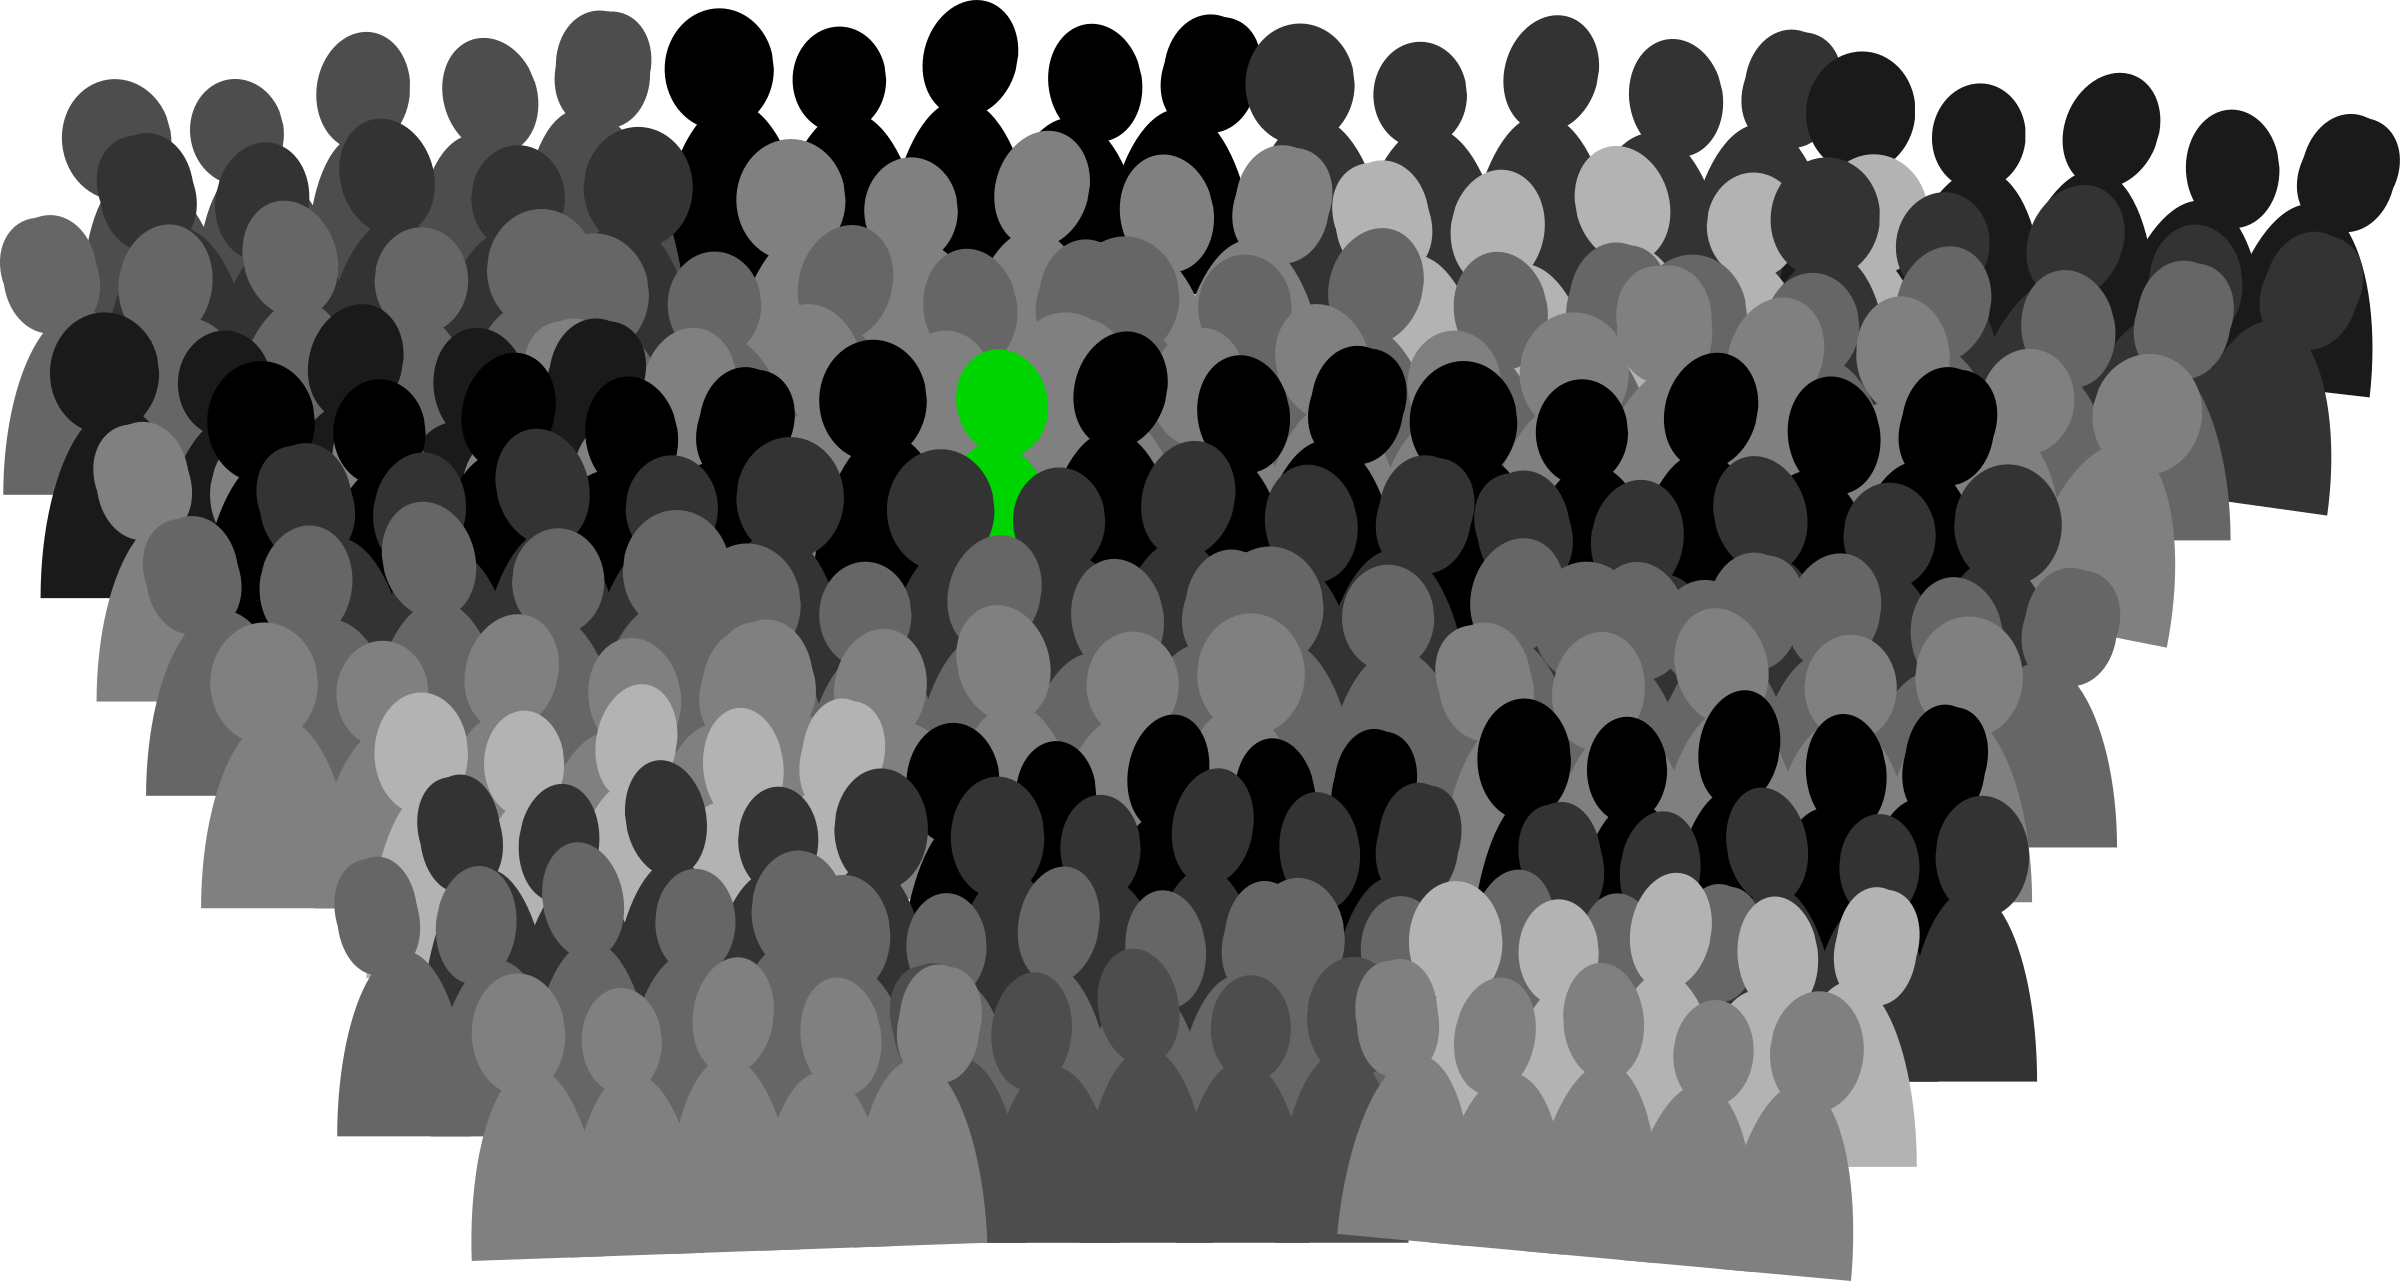 Panda free images audience. Crowd clipart